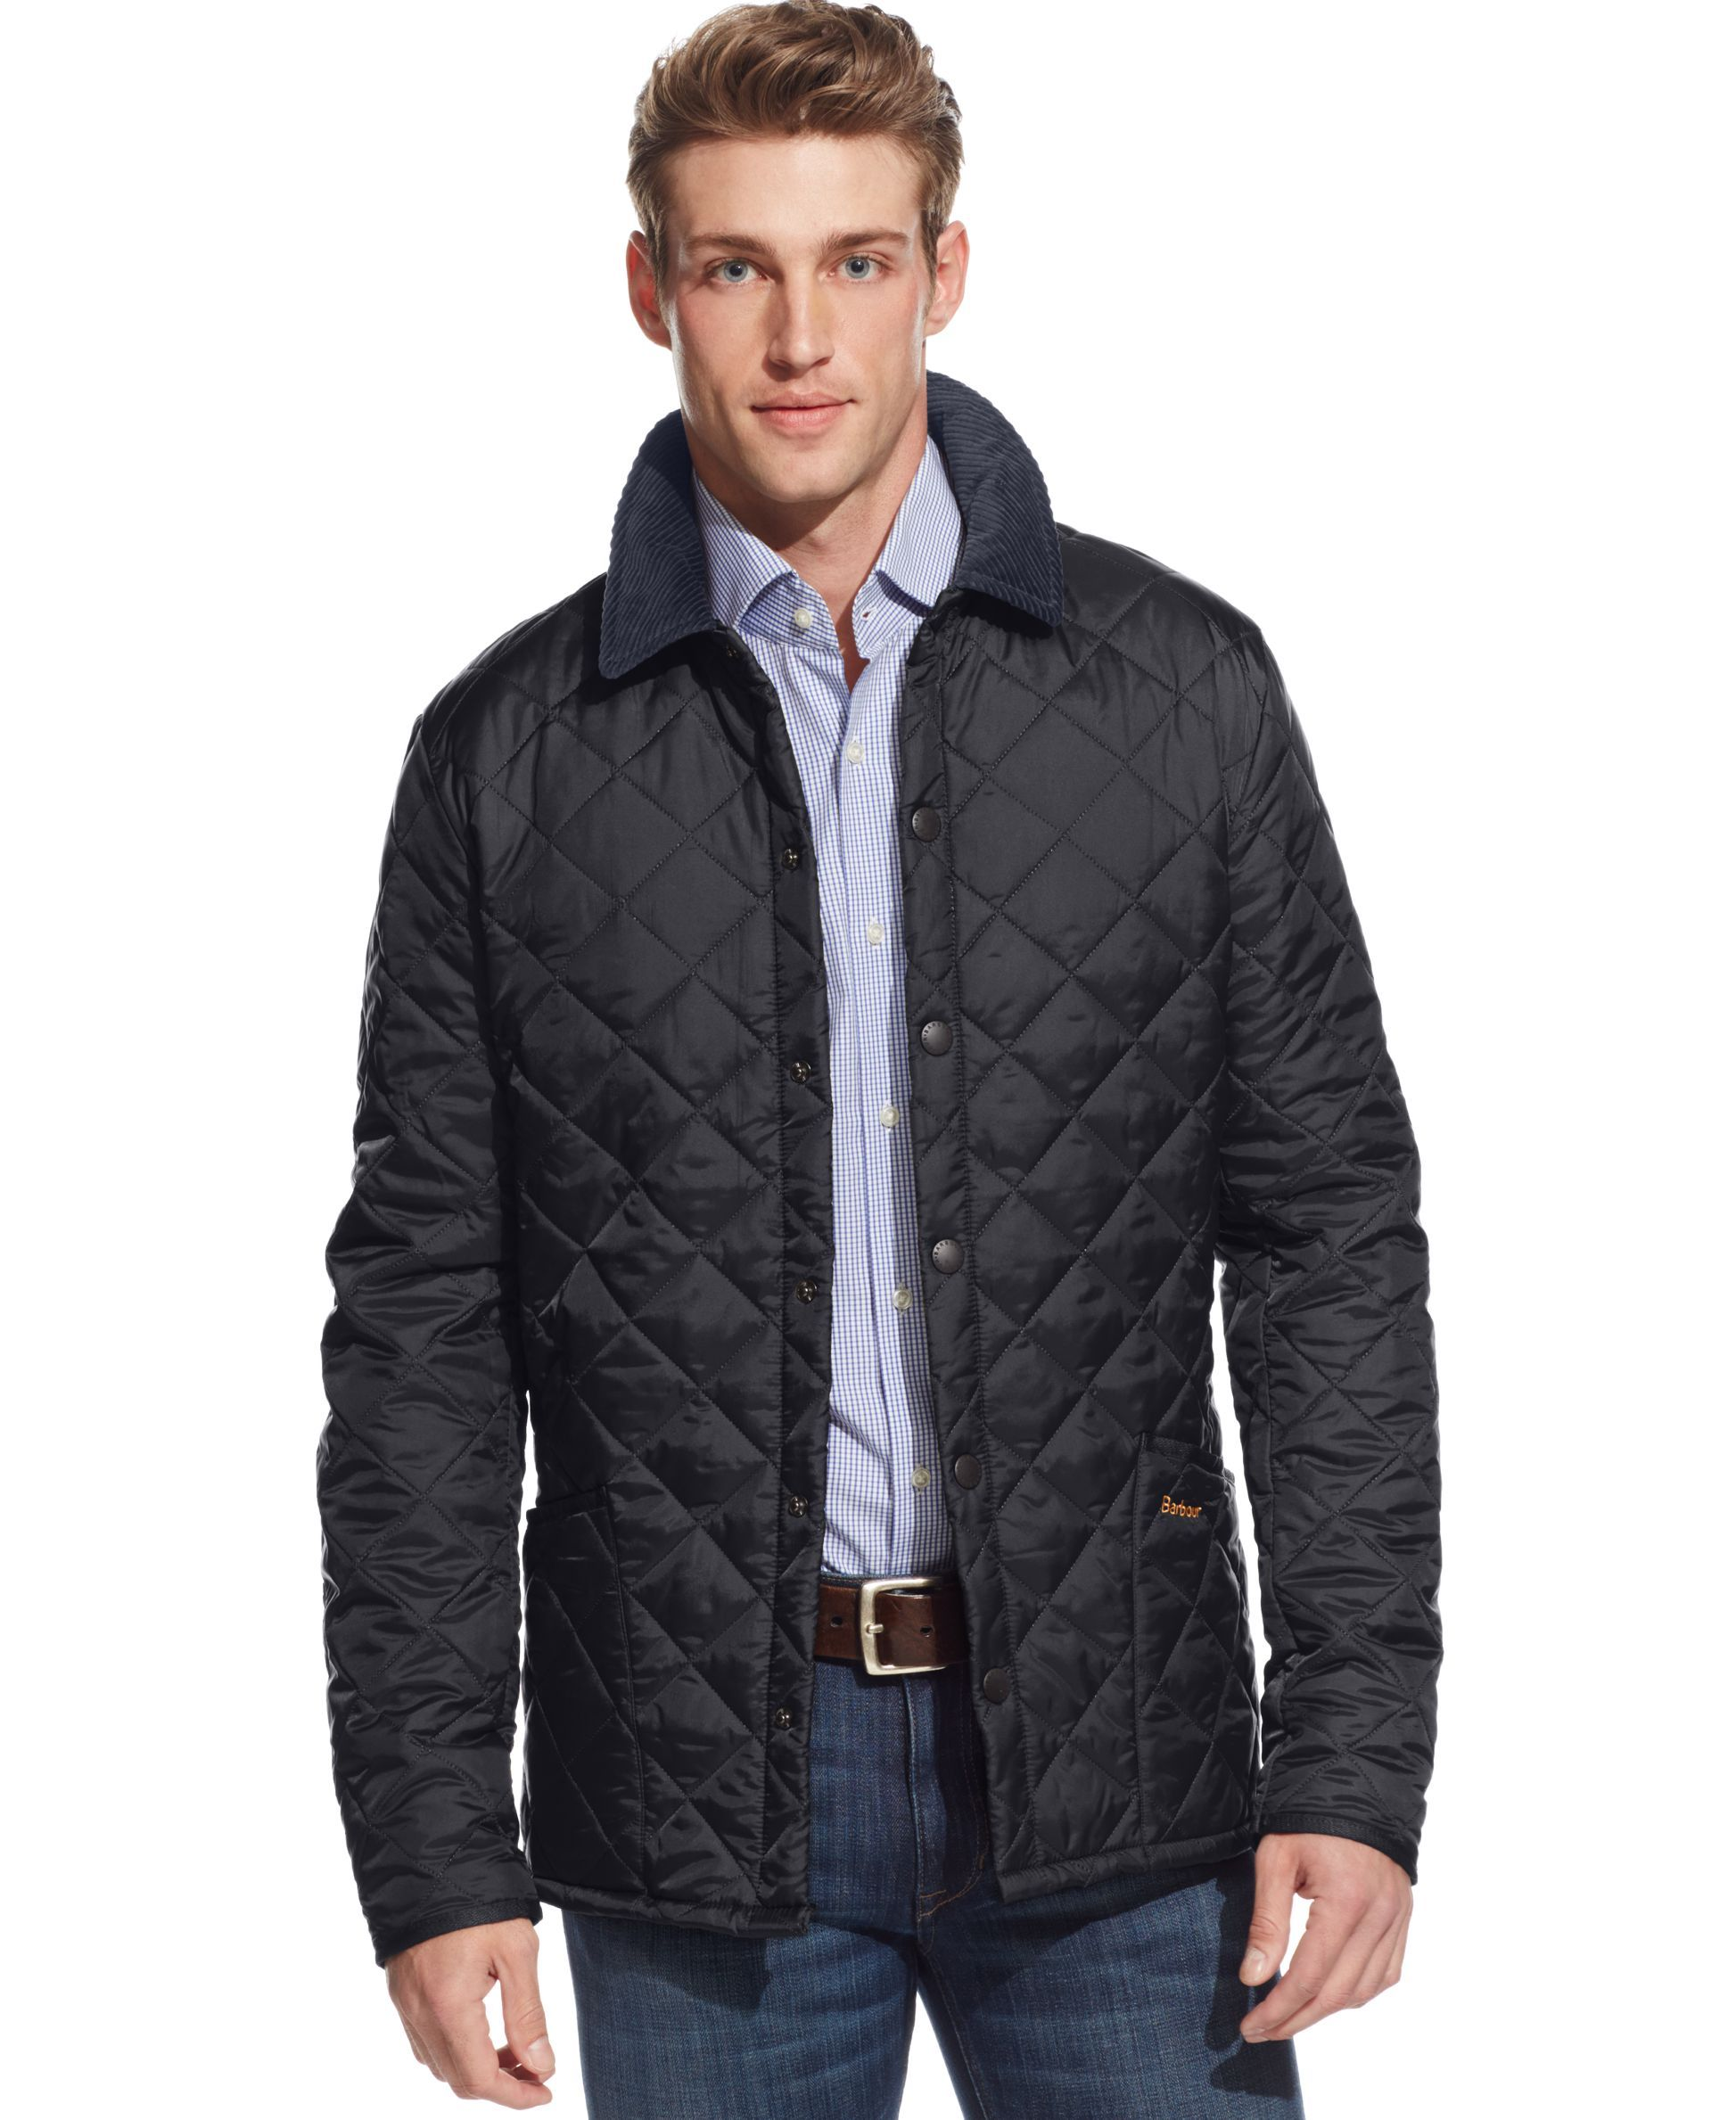 quilted by barbour navy men s in jacket quilt outerwear club liddesdale mens country heritage prep products